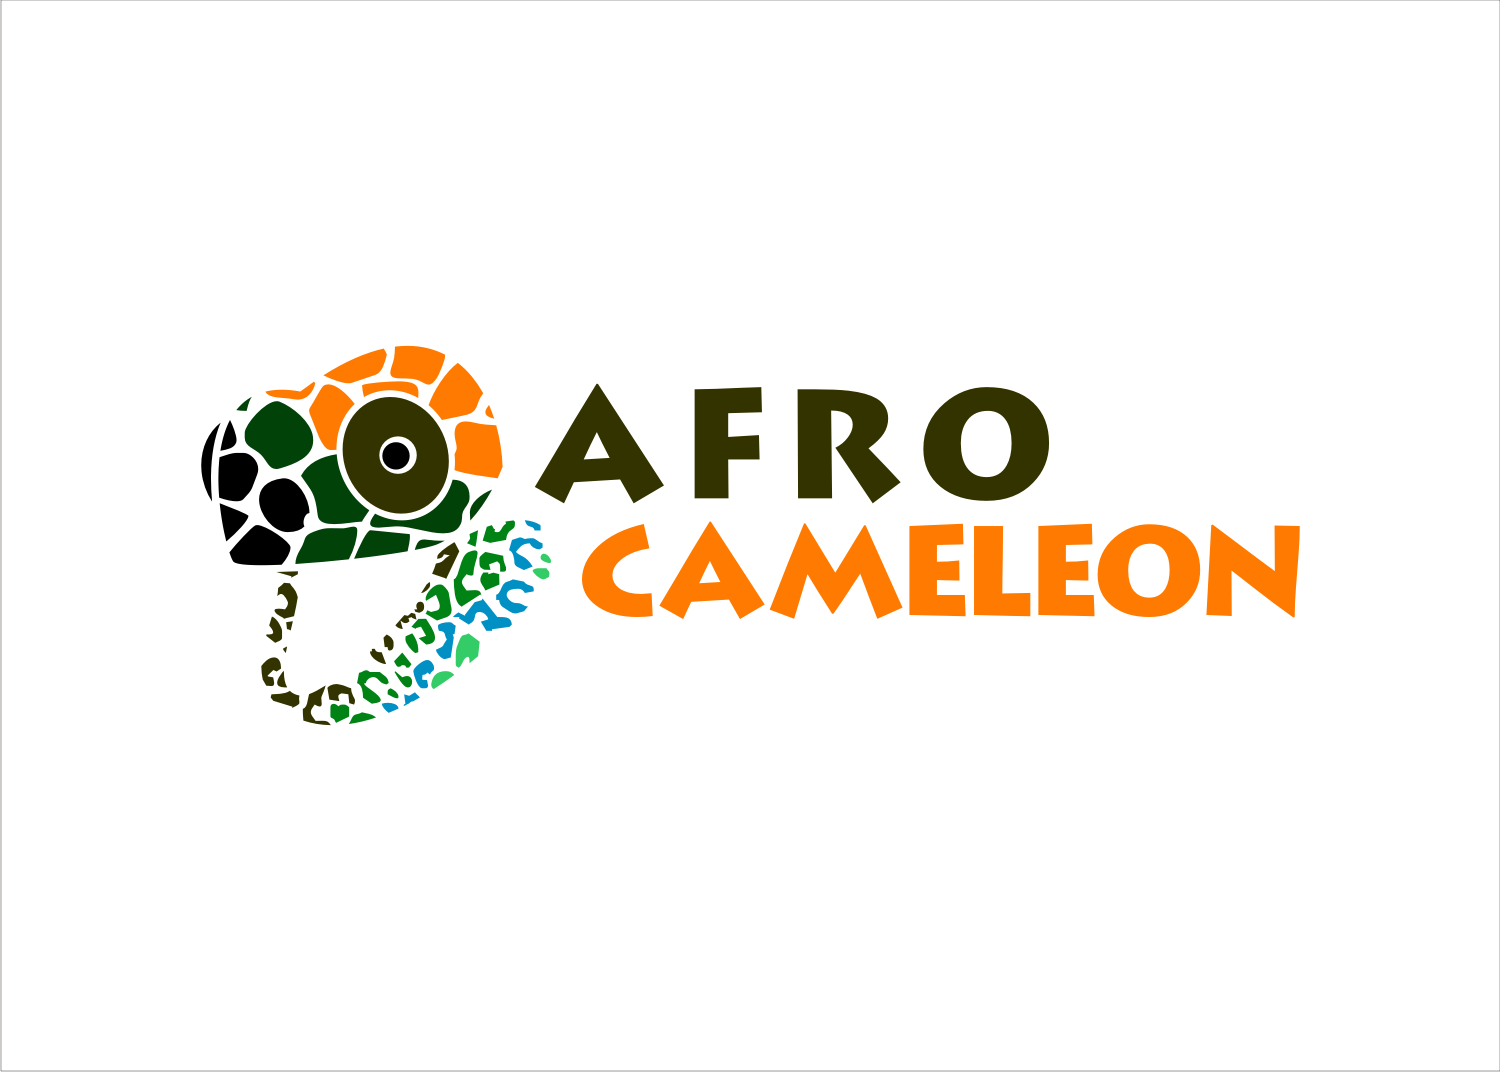 Afrocameleon needs a new logo